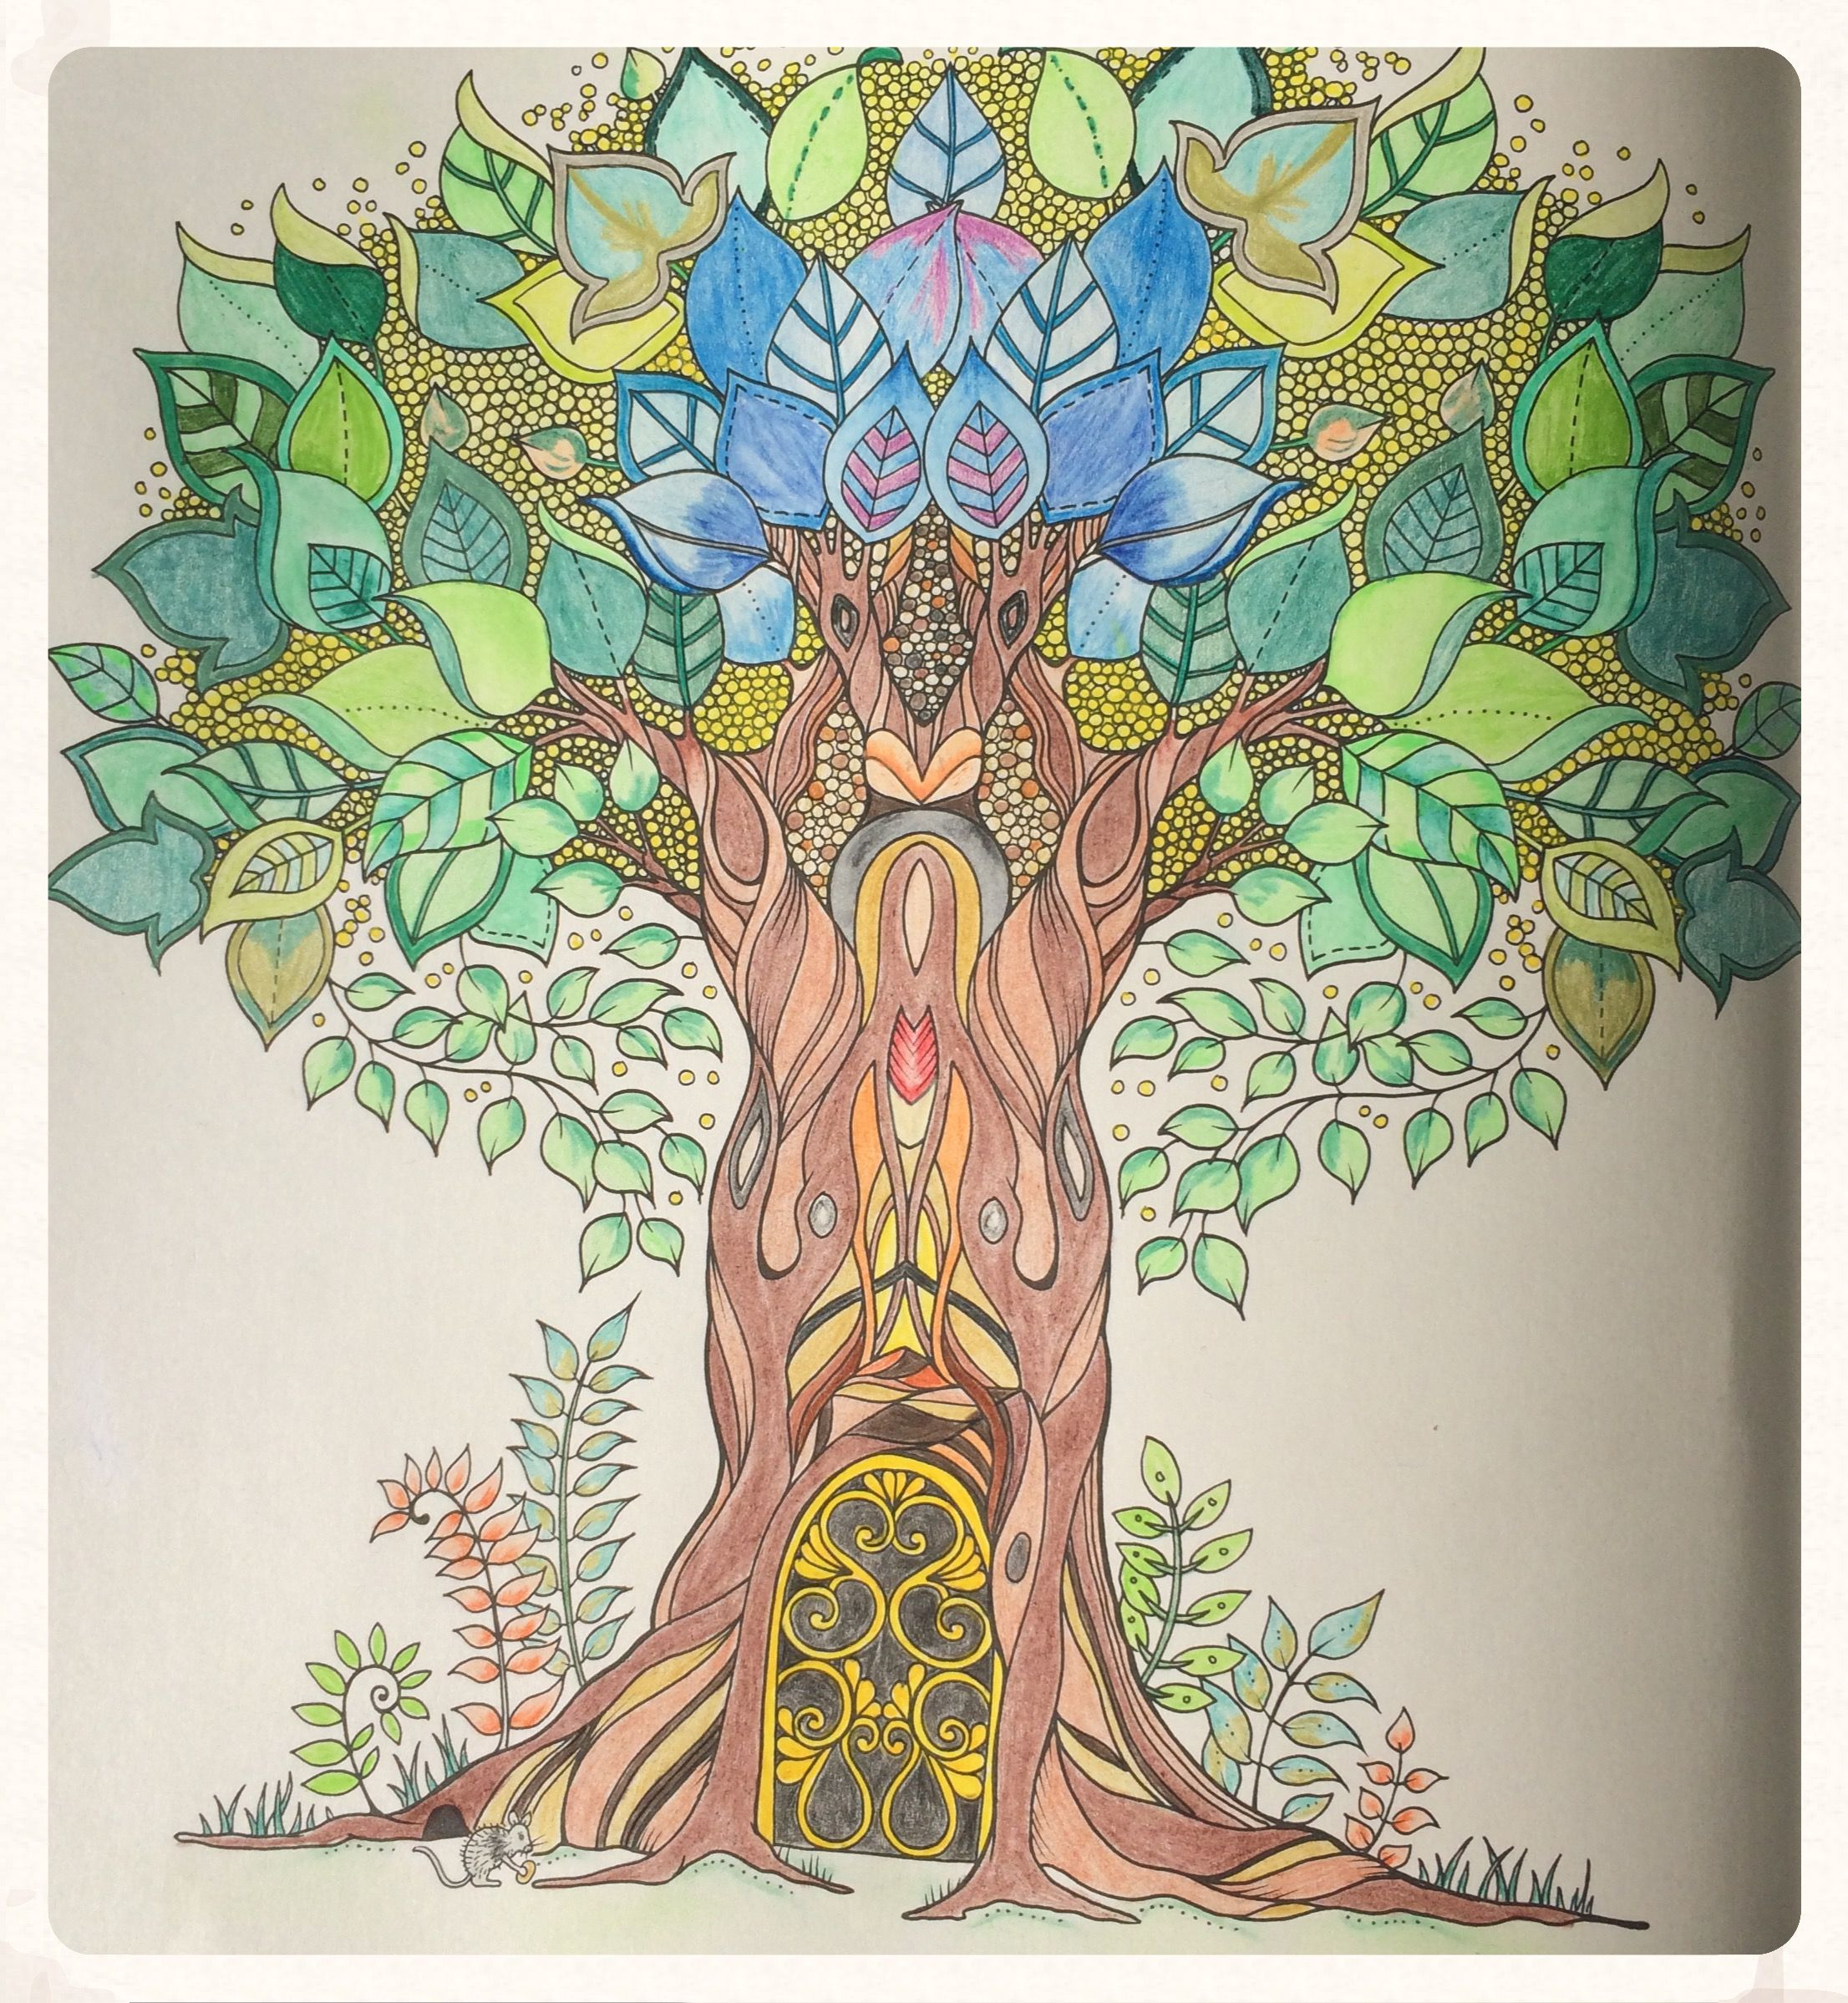 The enchanted forest coloring book review - Johanna Basford S Enchanted Forest Tree Adult Coloringcoloring Booksjohanna